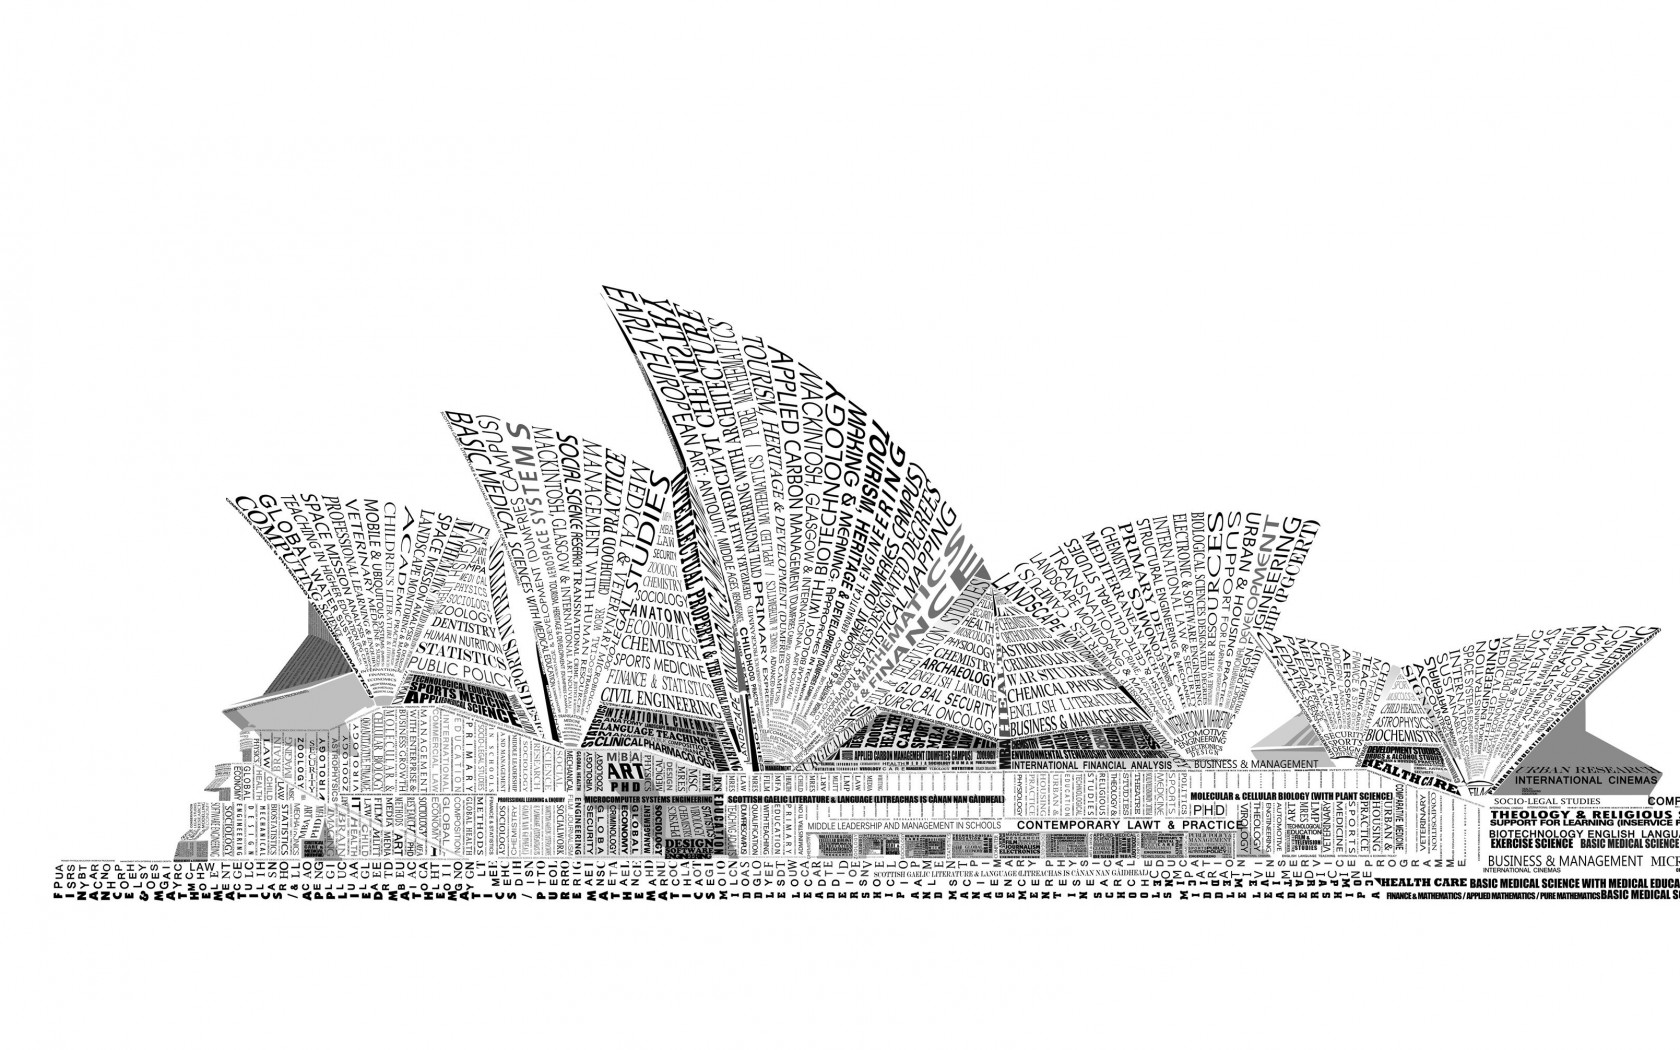 Opera House Sydney Typography Wallpaper for Desktop 1680x1050